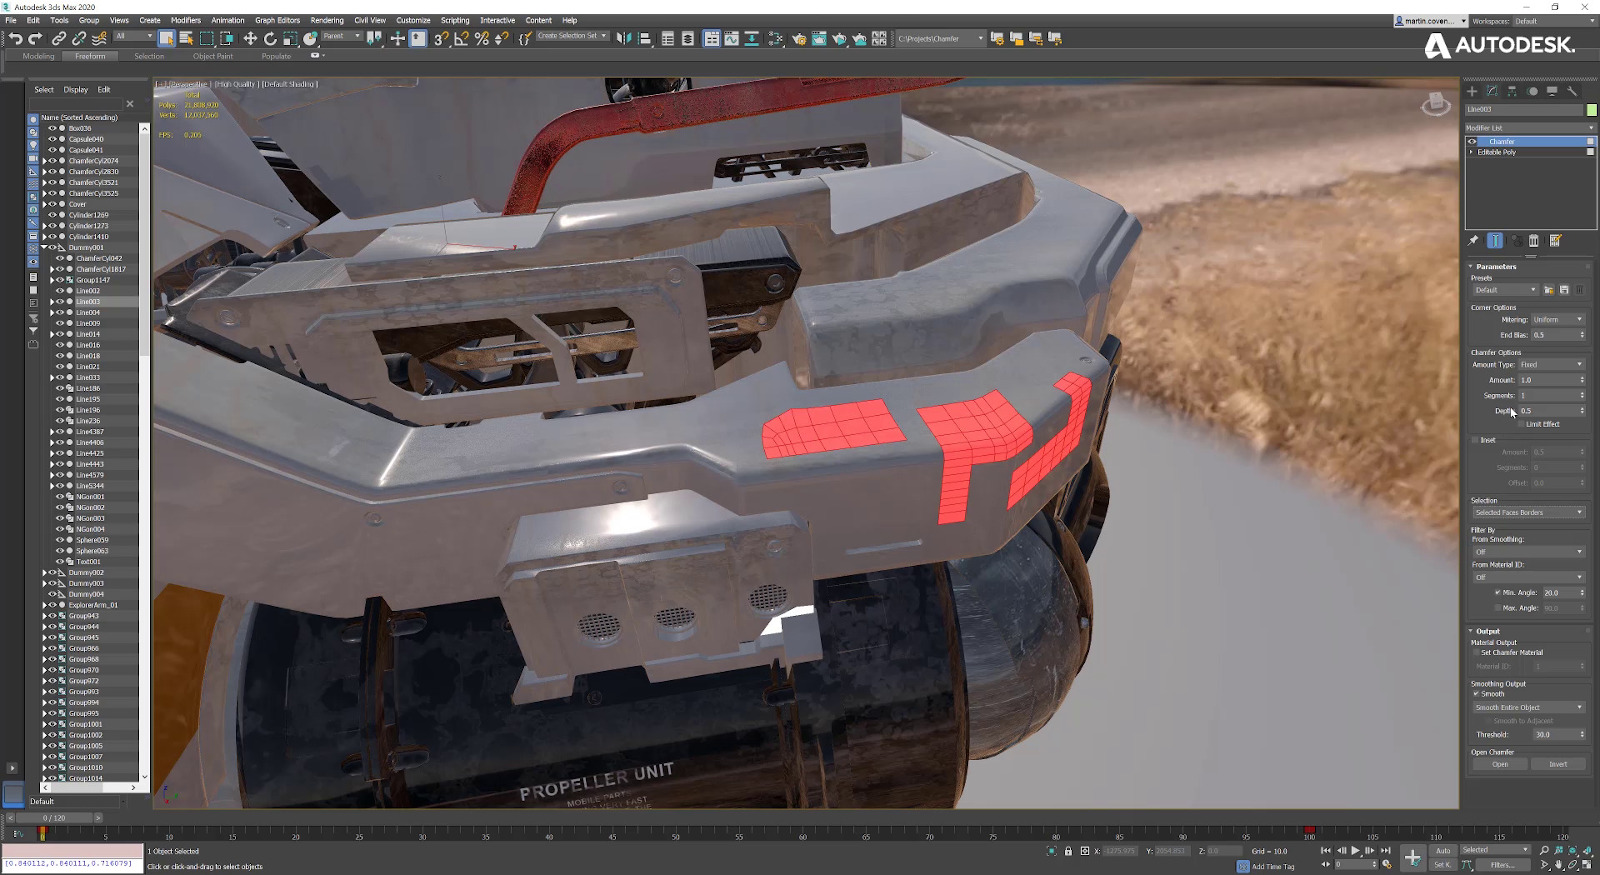 Autodesk 3ds Max 2020 Screnshot